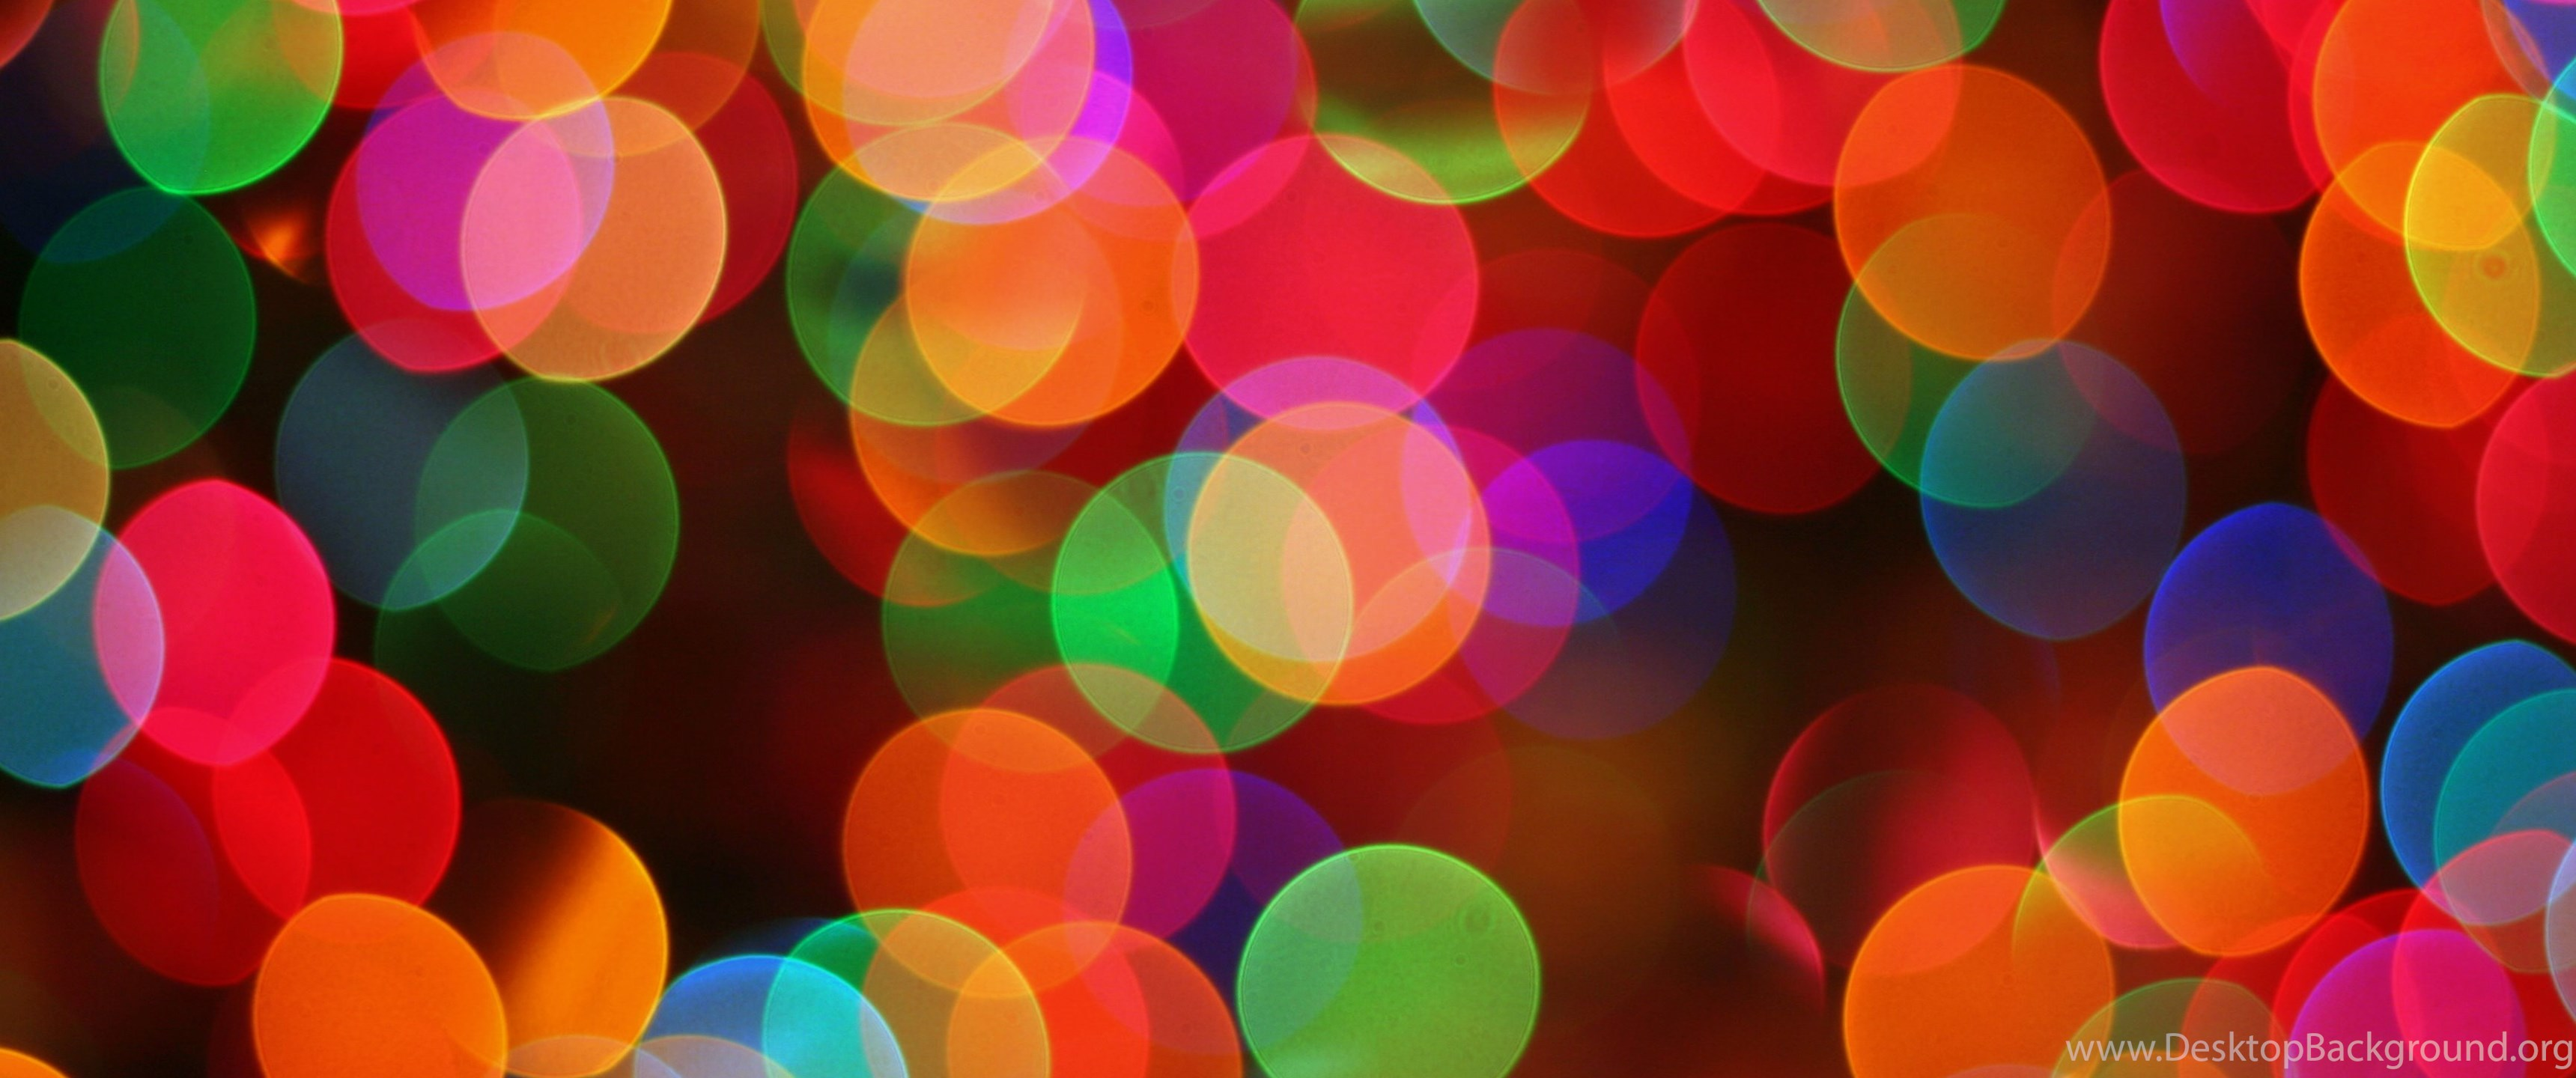 High Res Christmas Backgrounds Wallpapers Zone Desktop